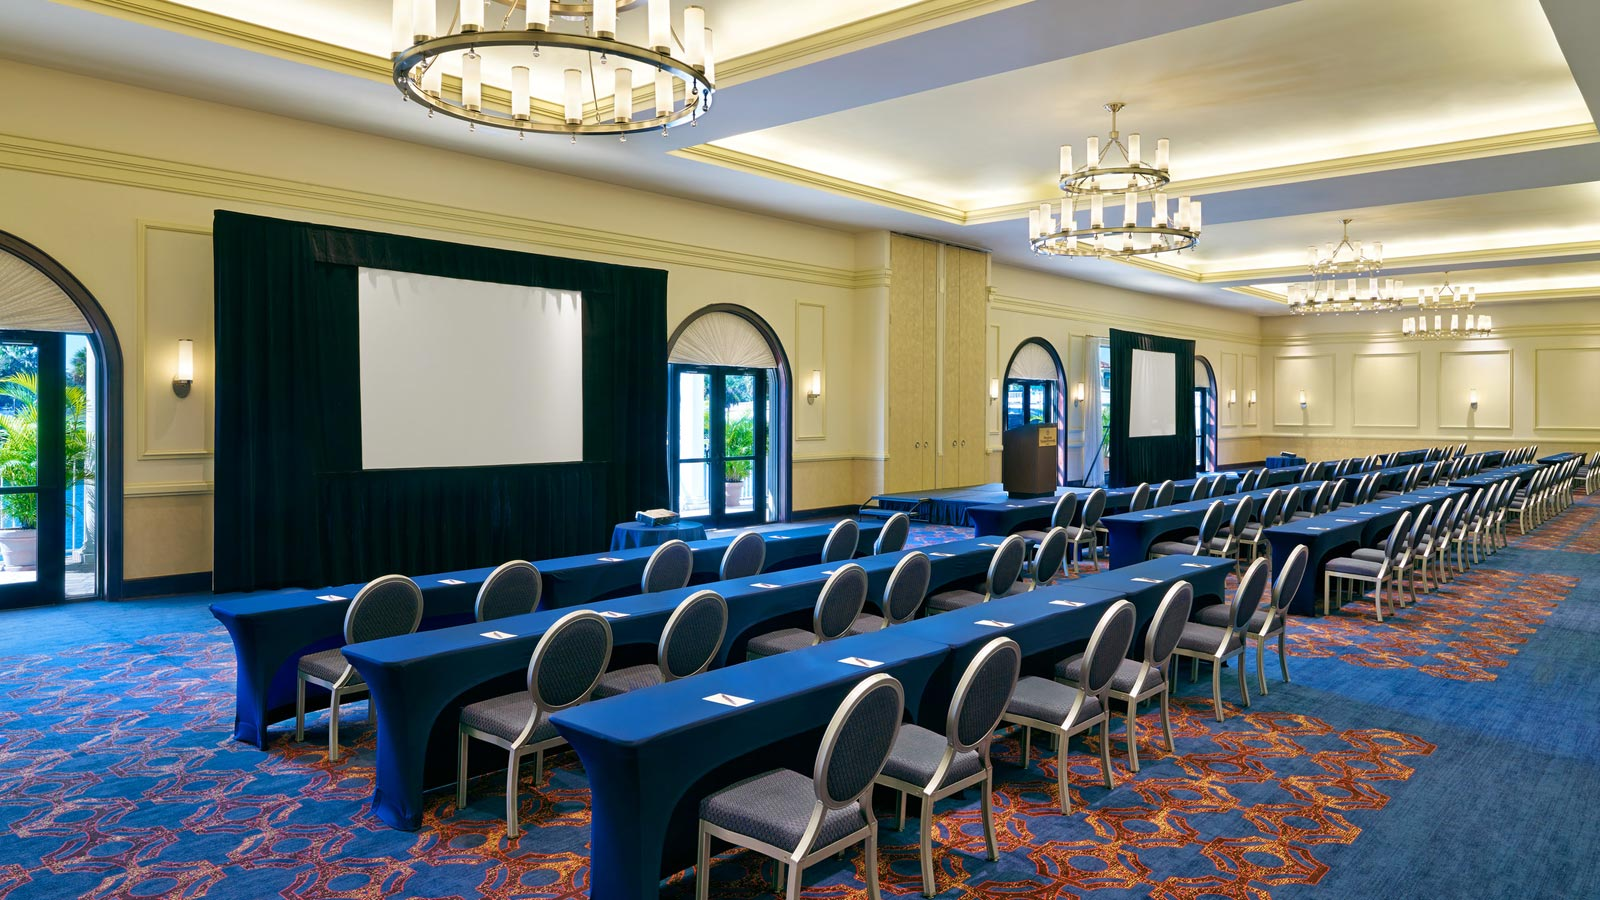 Sheraton Tampa Riverwalk Hotel - Riverwalk Ballroom